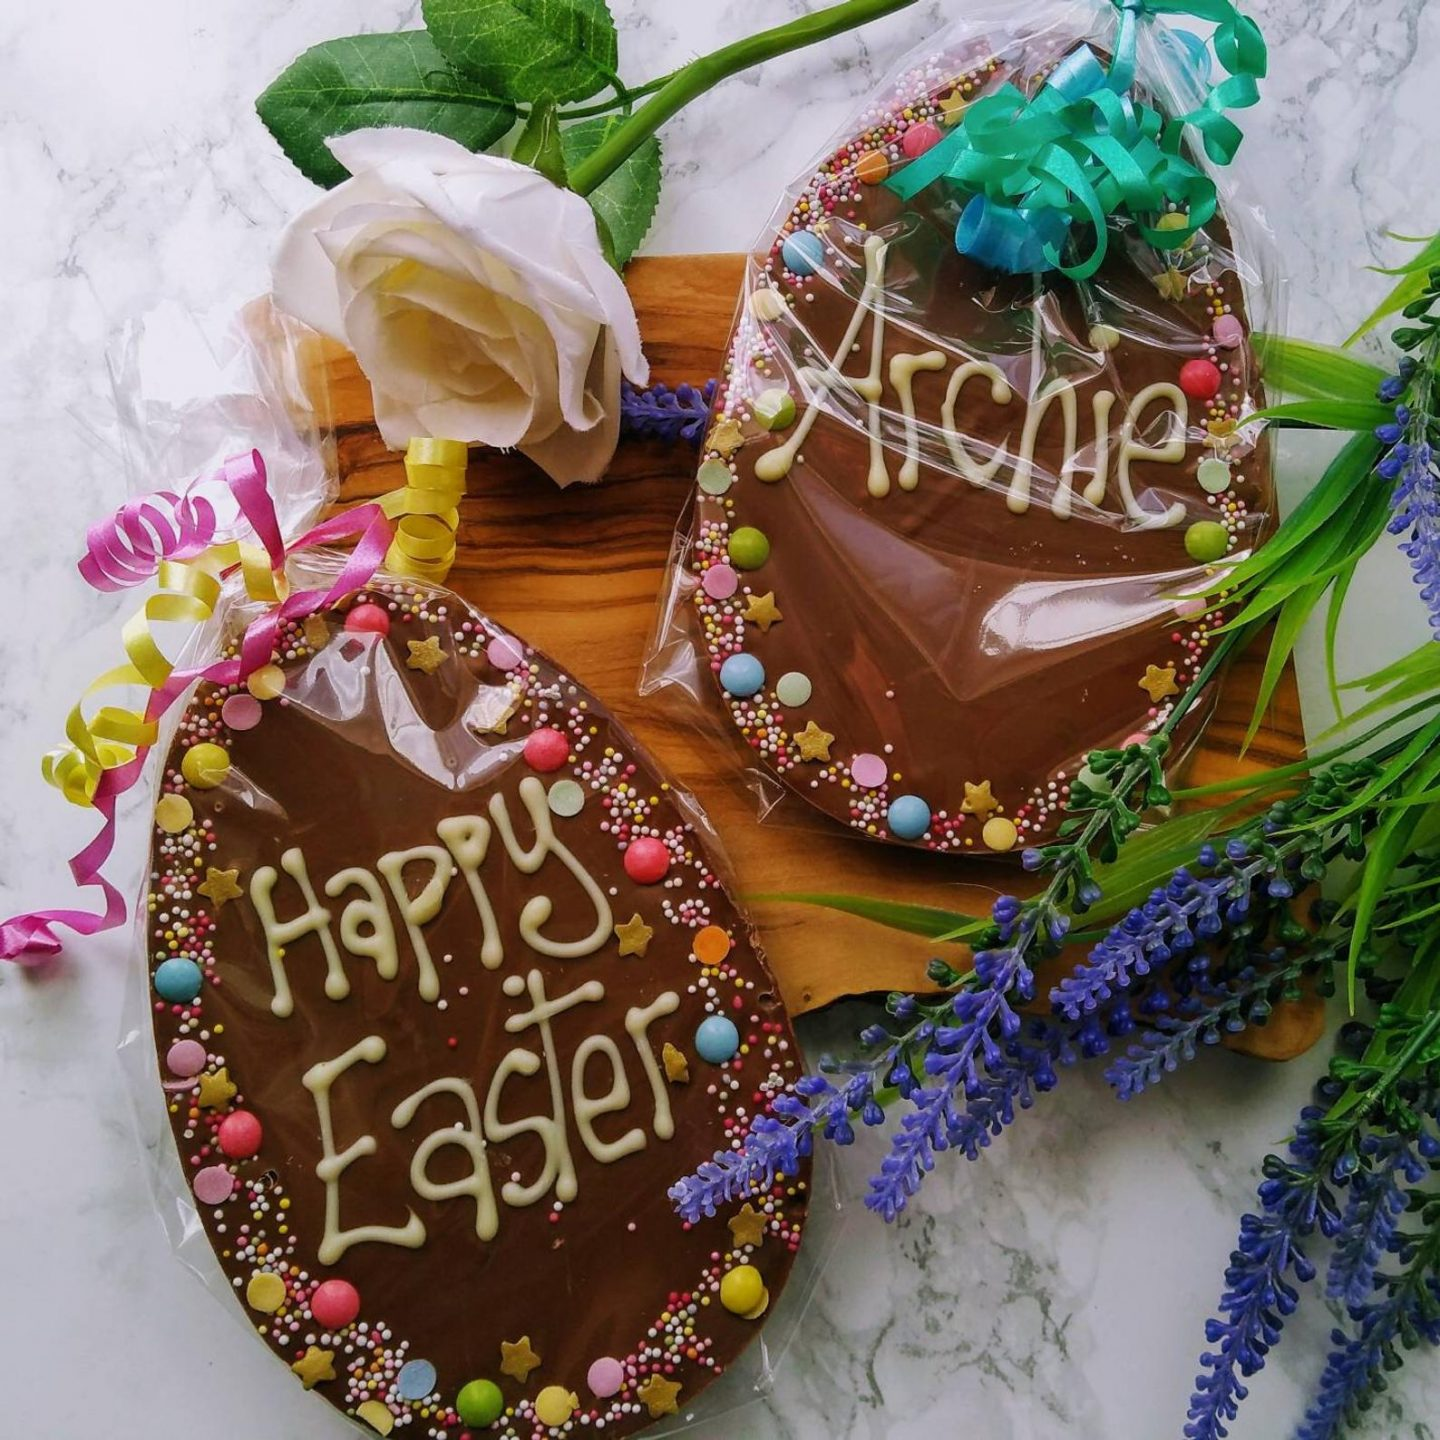 Personalized Chocolate Easter Egg Plaque